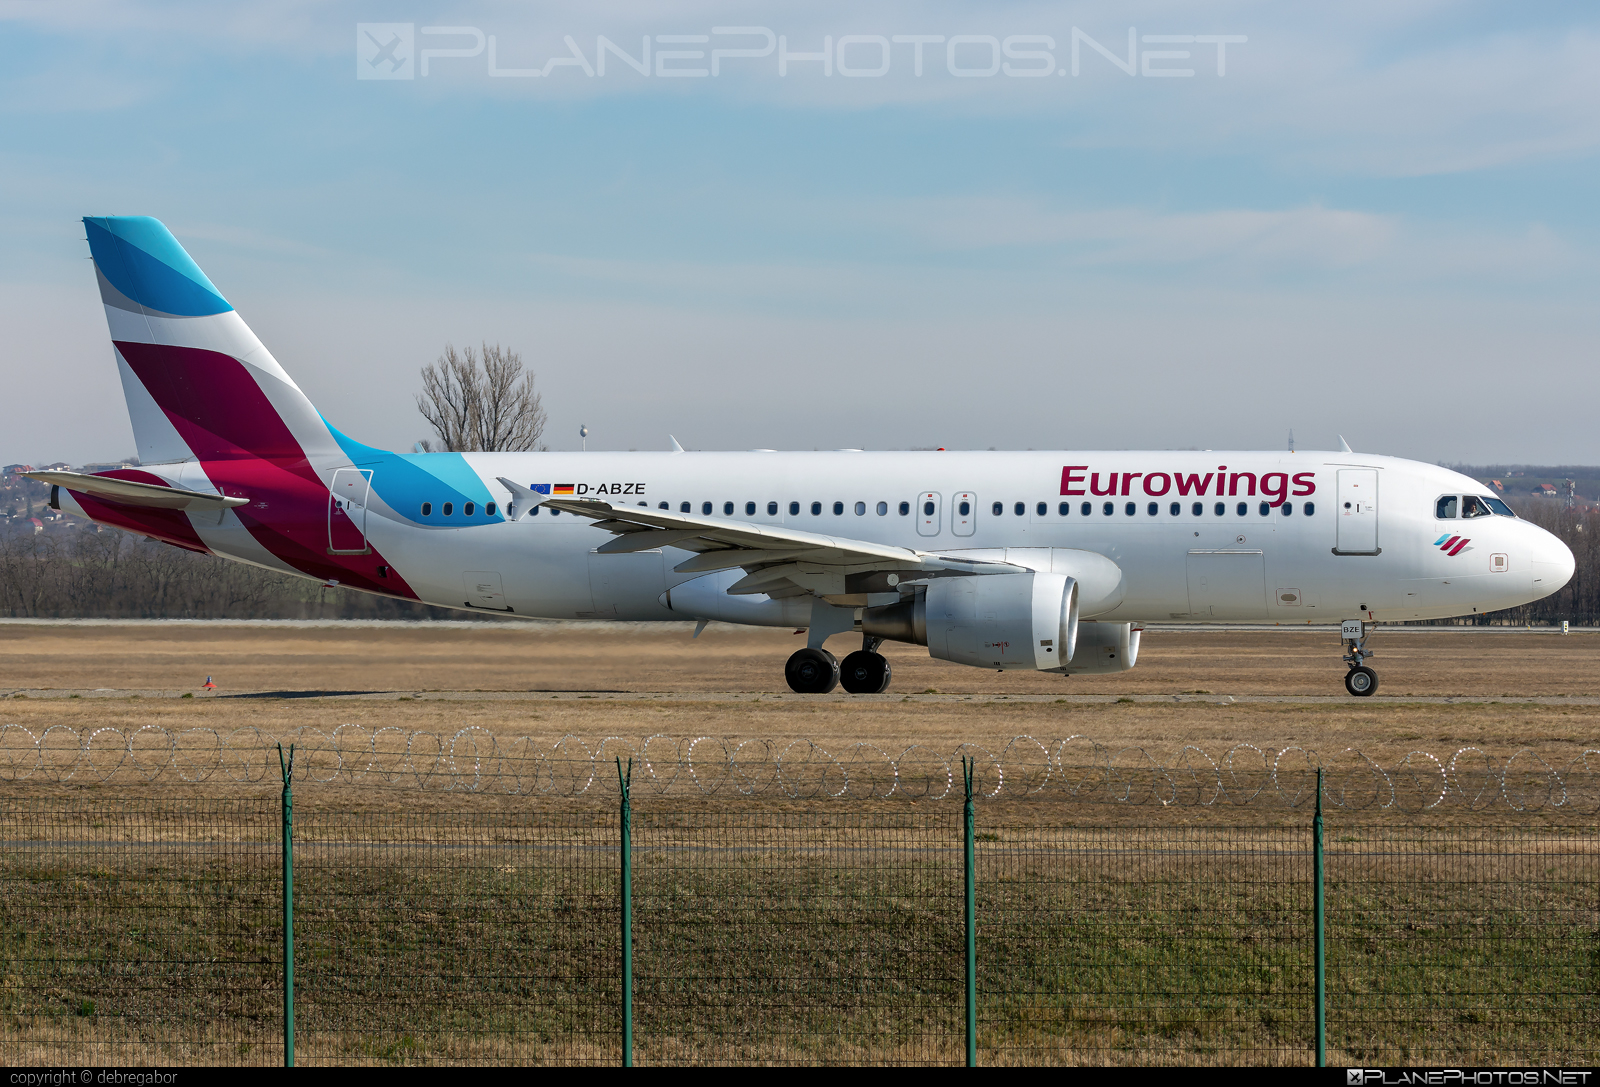 Airbus A320-216 - D-ABZE operated by Eurowings #a320 #a320family #airbus #airbus320 #eurowings